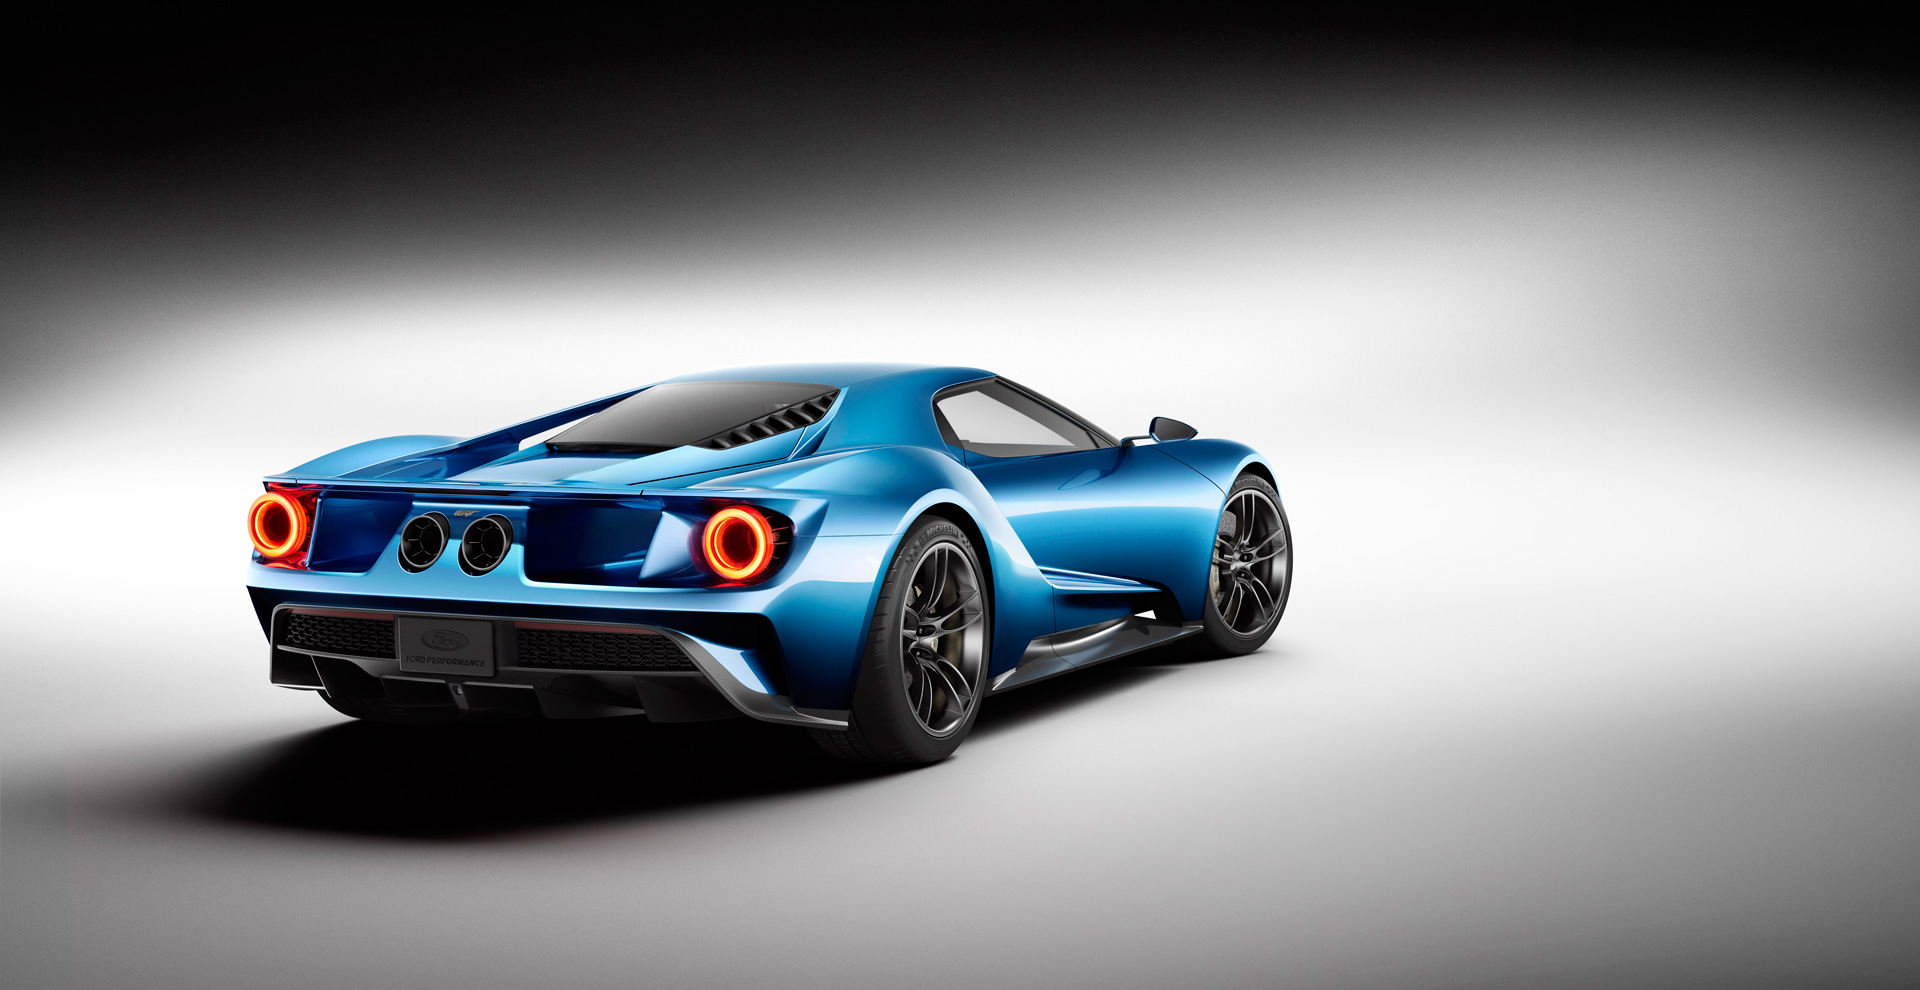 2016 All-New Ford GT - arrière - Ford